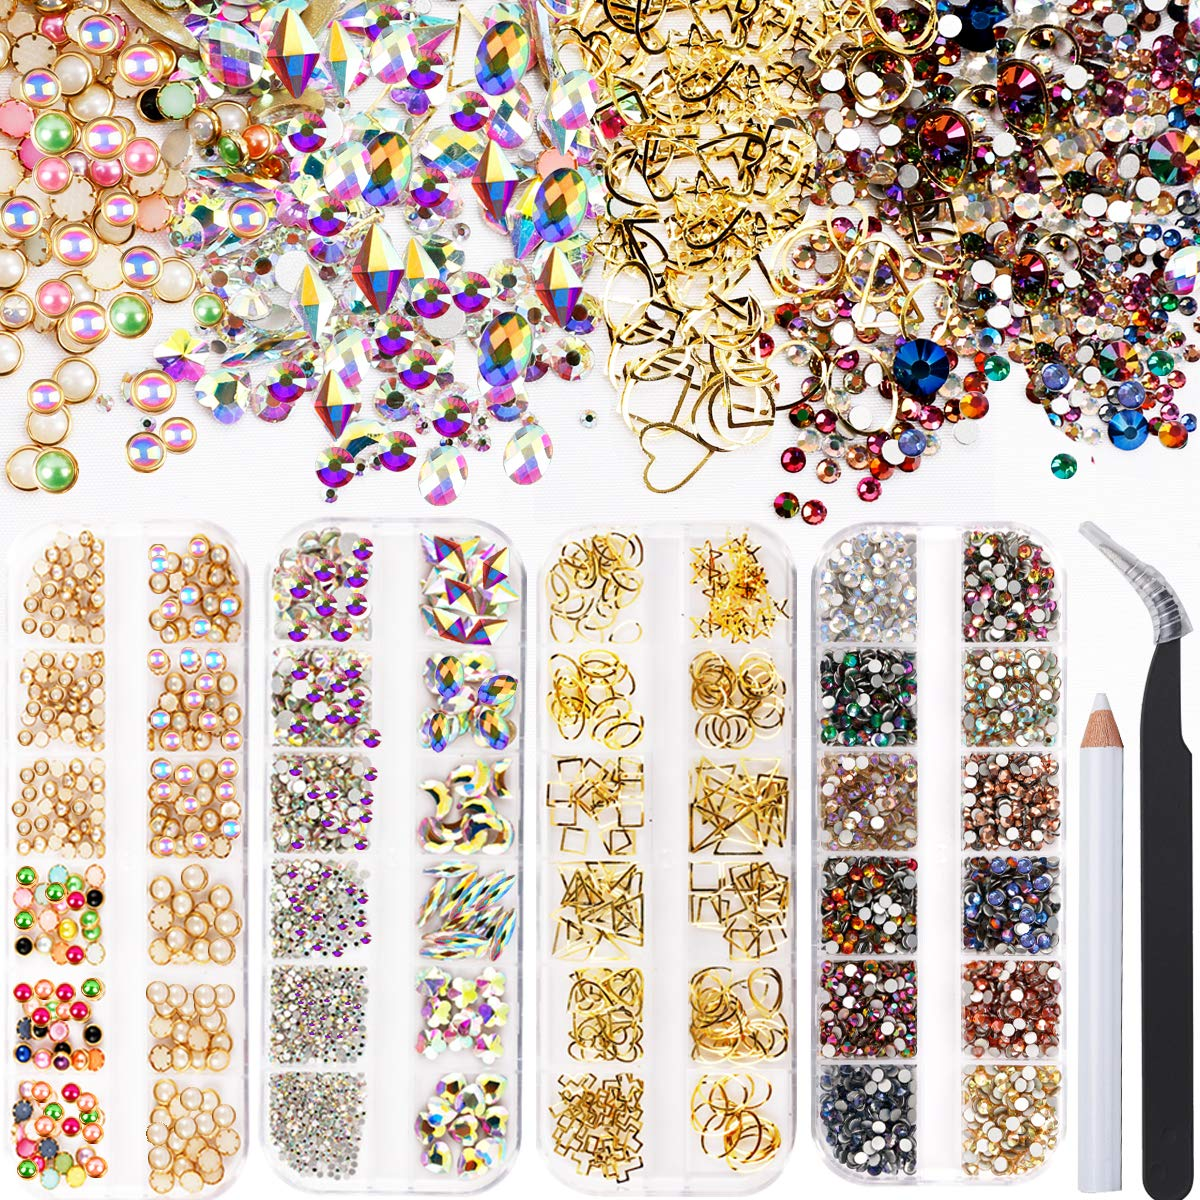 4 Boxes nail art decorations kit - including VARWANEO3000 pcs Glass Crystal AB Rhinestones for nails, 48 types of nail accessories,mixed sizes half pearl beads for gold nail art (set 2)